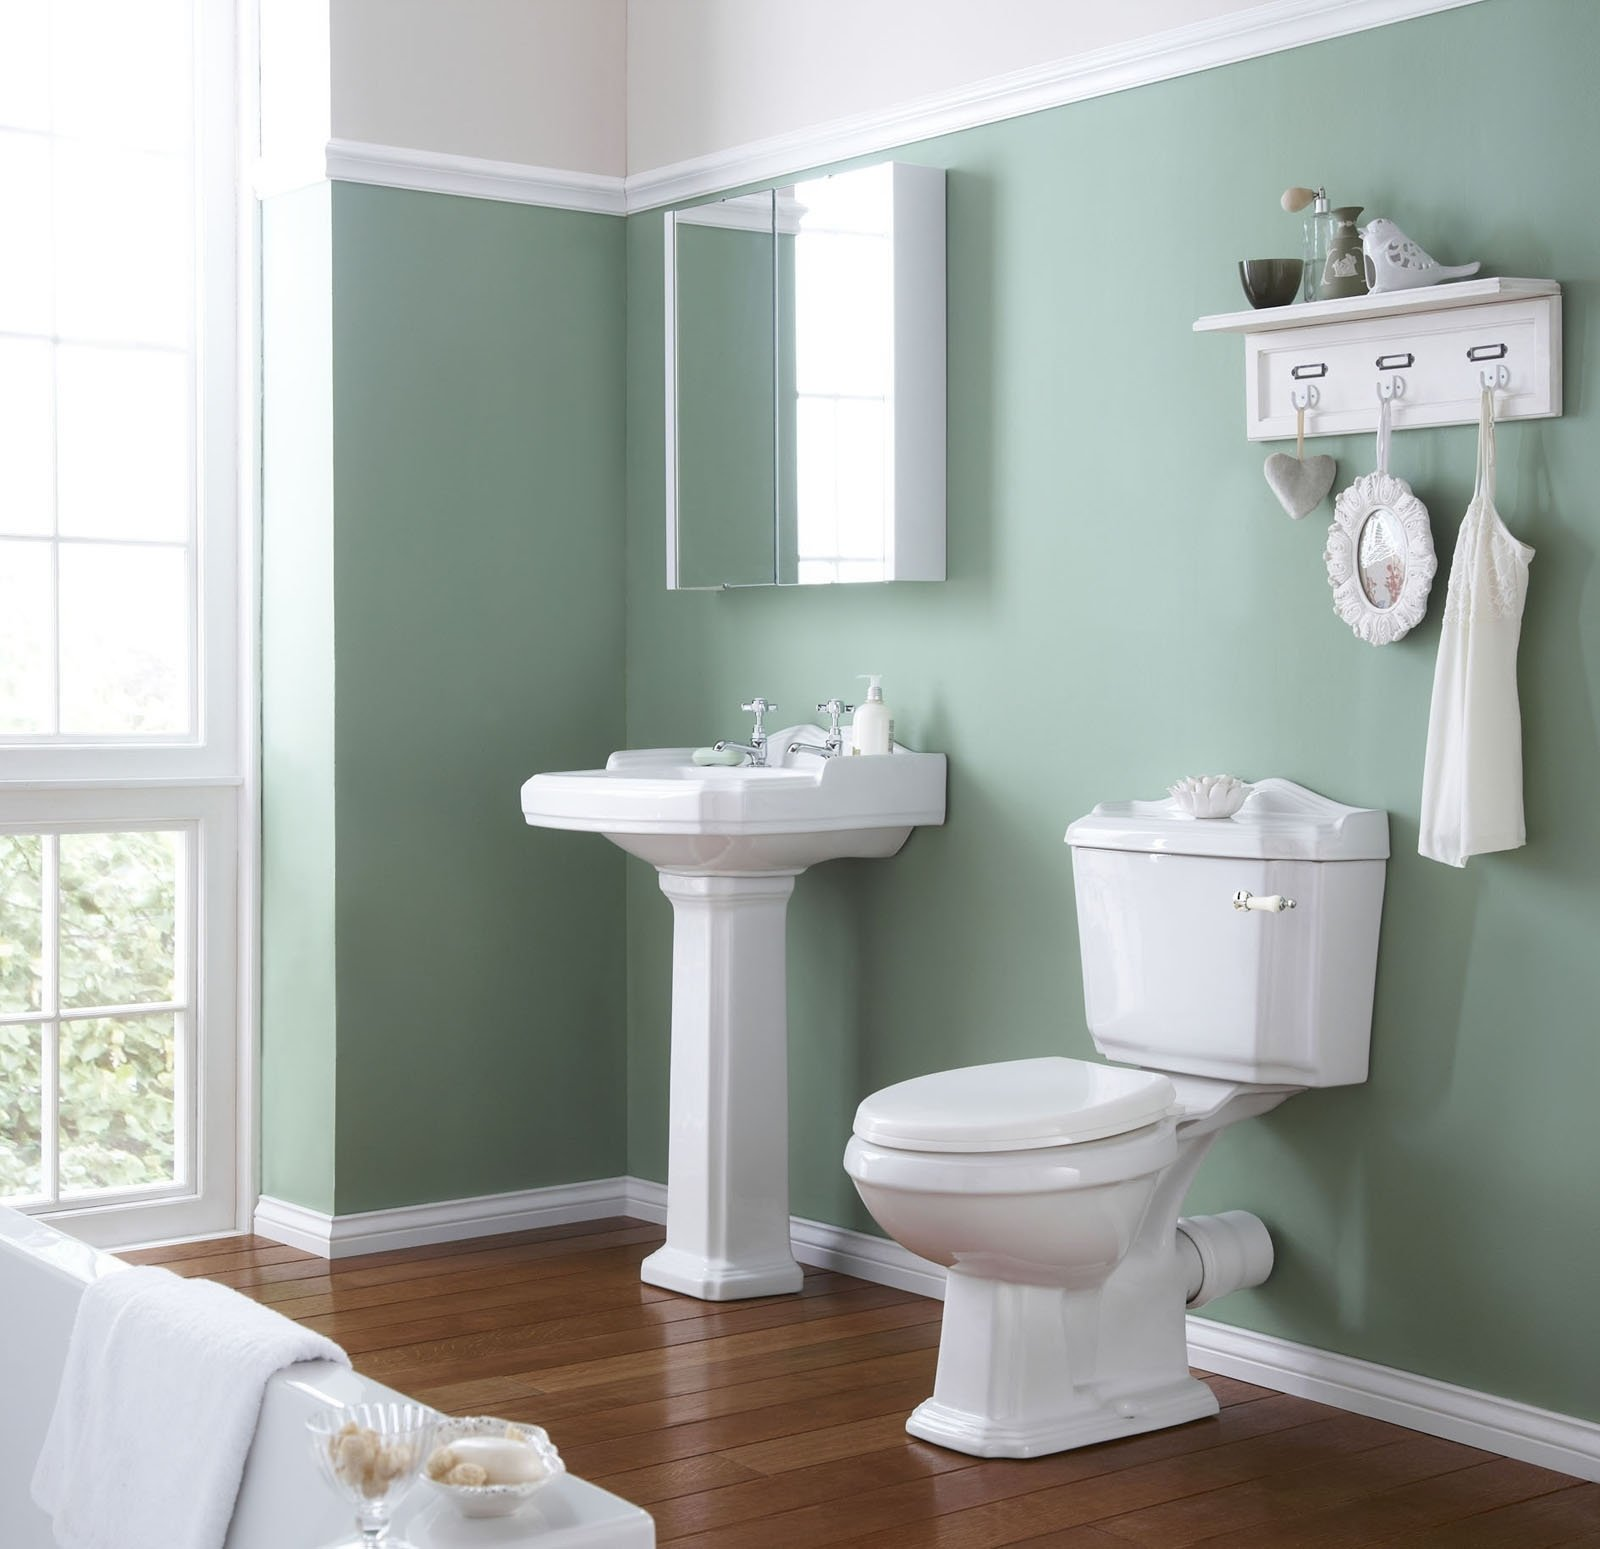 10 Famous Bathroom Color Ideas For Small Bathrooms paint colors for master bathroom for bathrooms that are painted a 2020